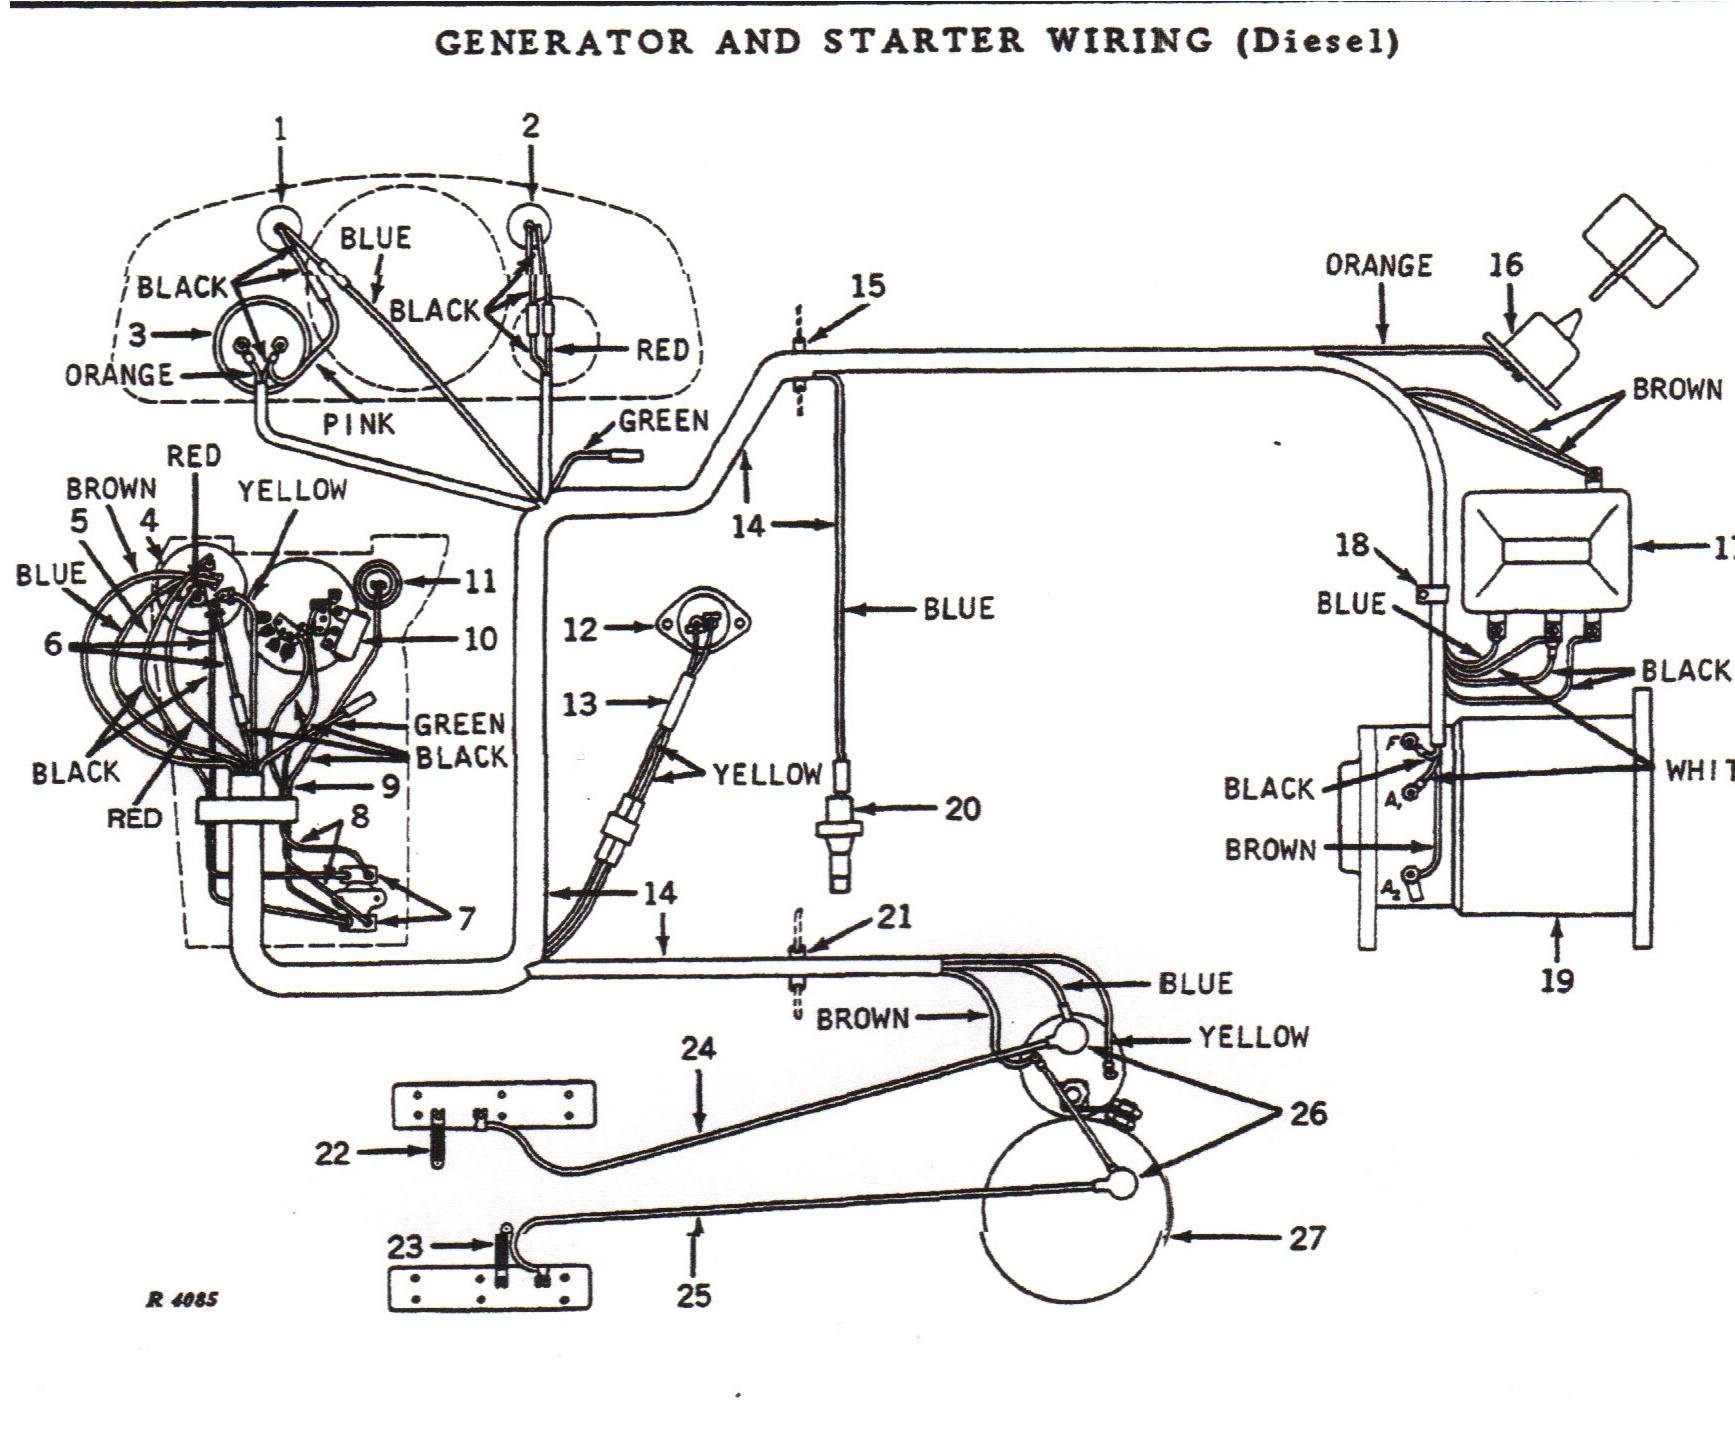 2011 318d John Deere Starter solenoid Diagram] Honda A Wiring Diagram Full Version Hd Quality Of 2011 318d John Deere Starter solenoid